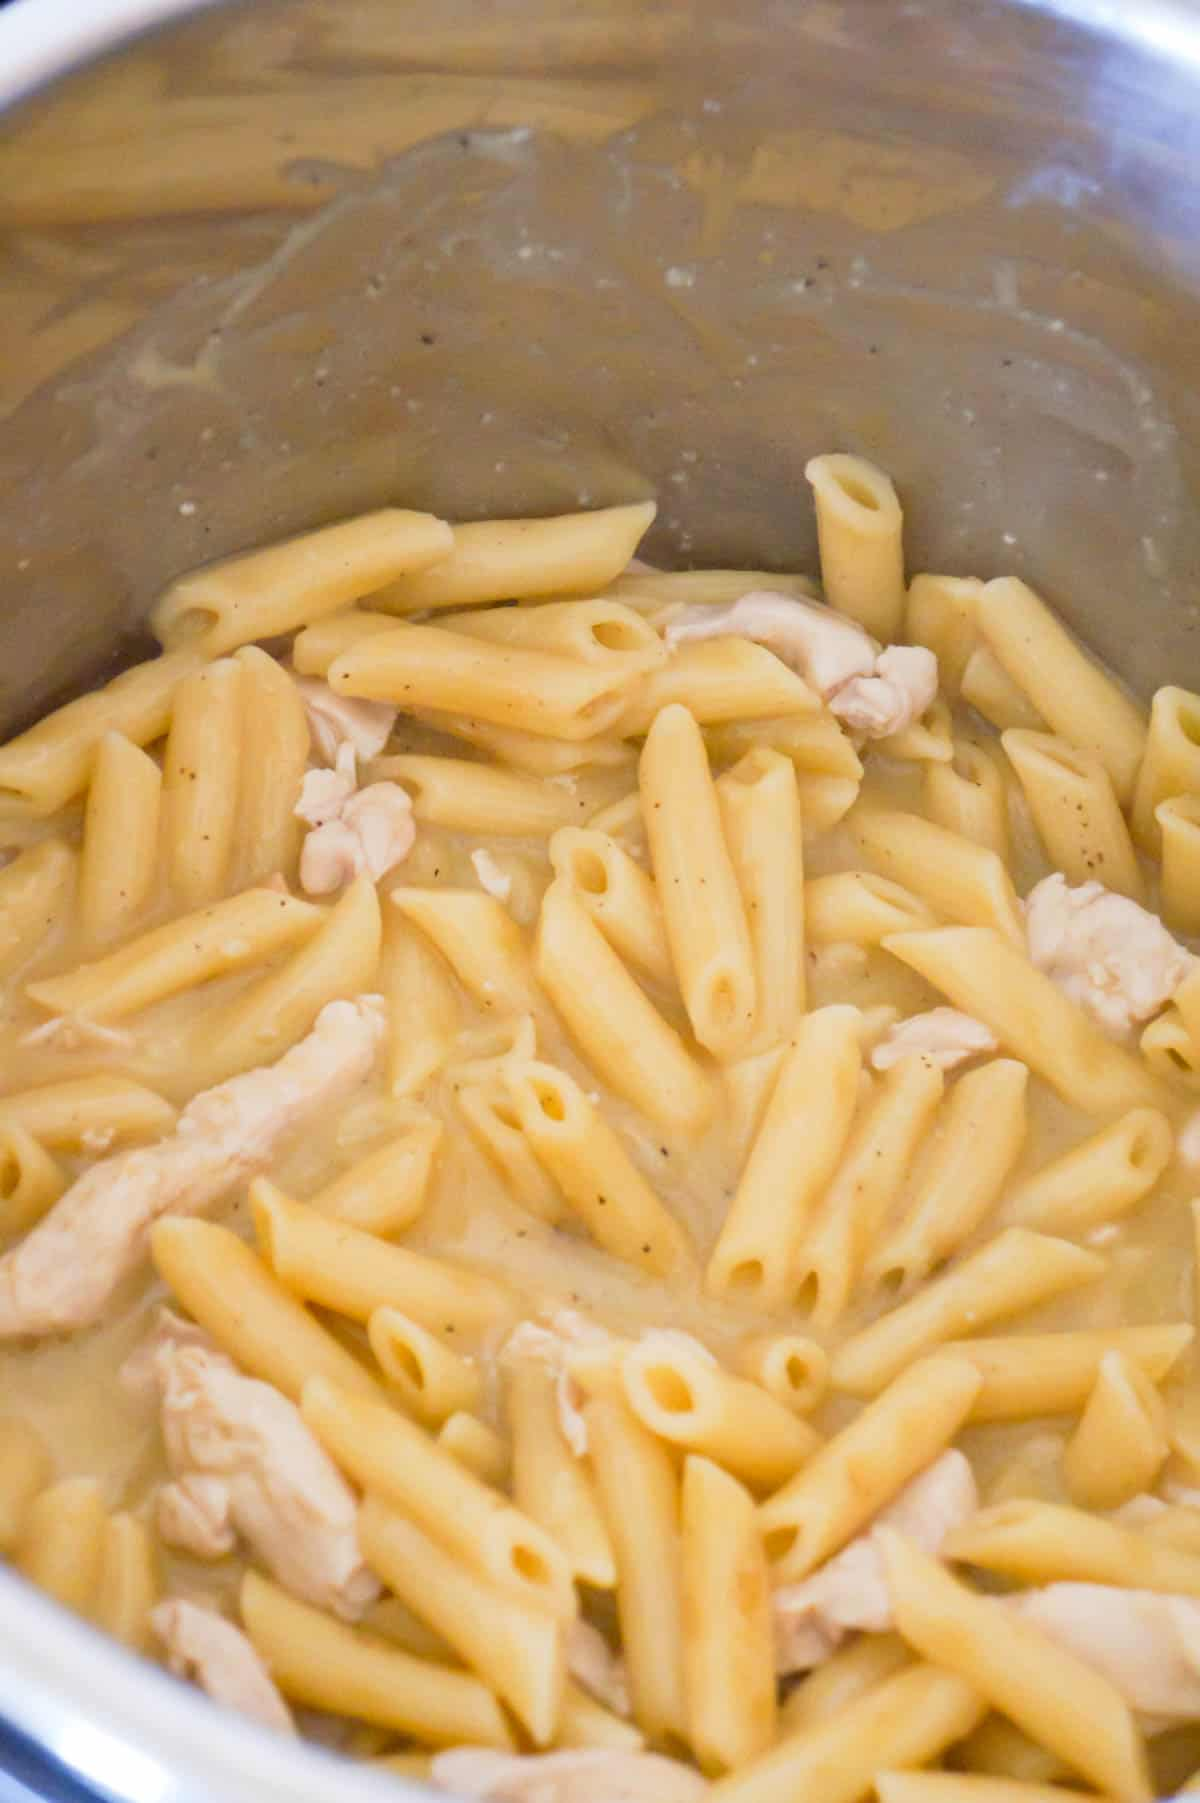 cooked penne pasta and chicken breast strips in an Instant Pot